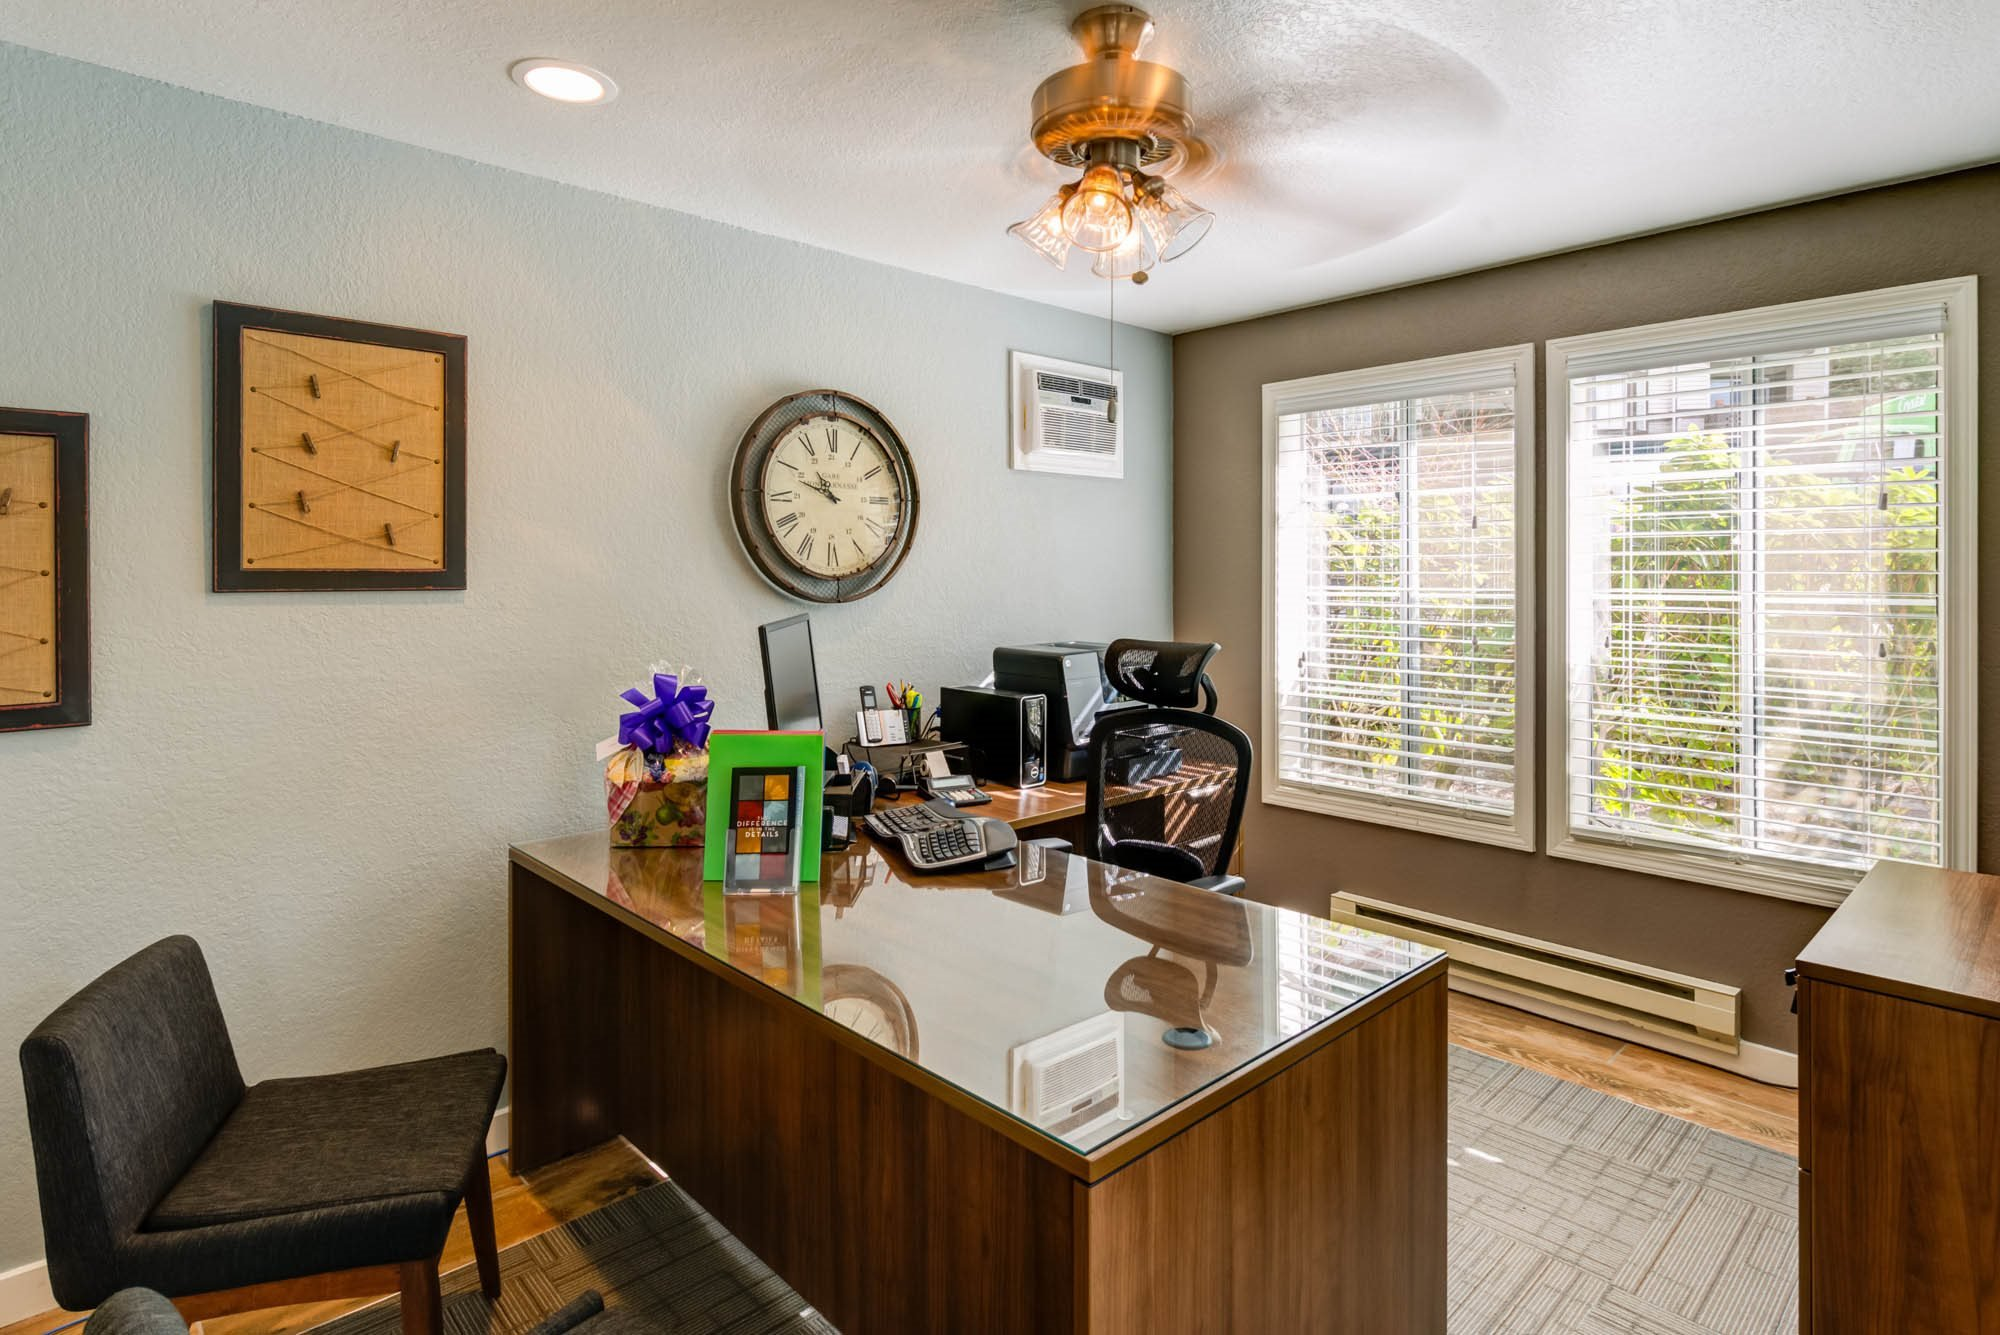 Renovated Interiors at Westview Village, Renton, WA,98055